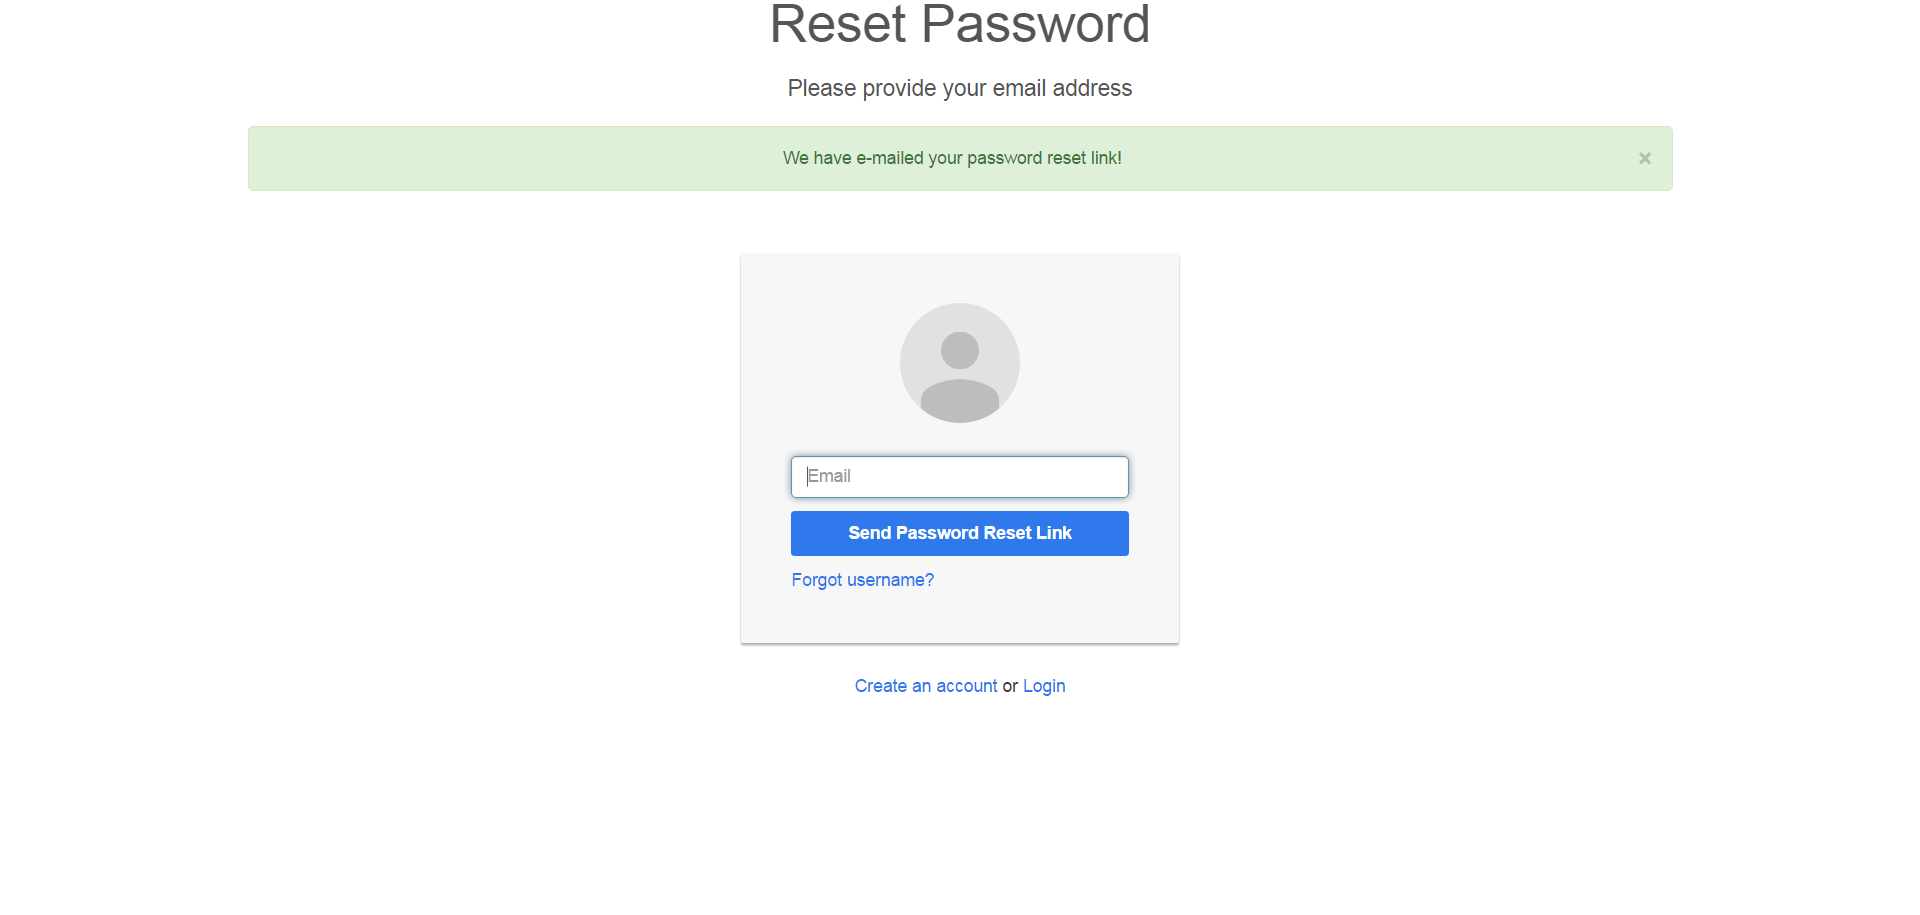 laravel-5_3-auth-app-14-password-reset-success